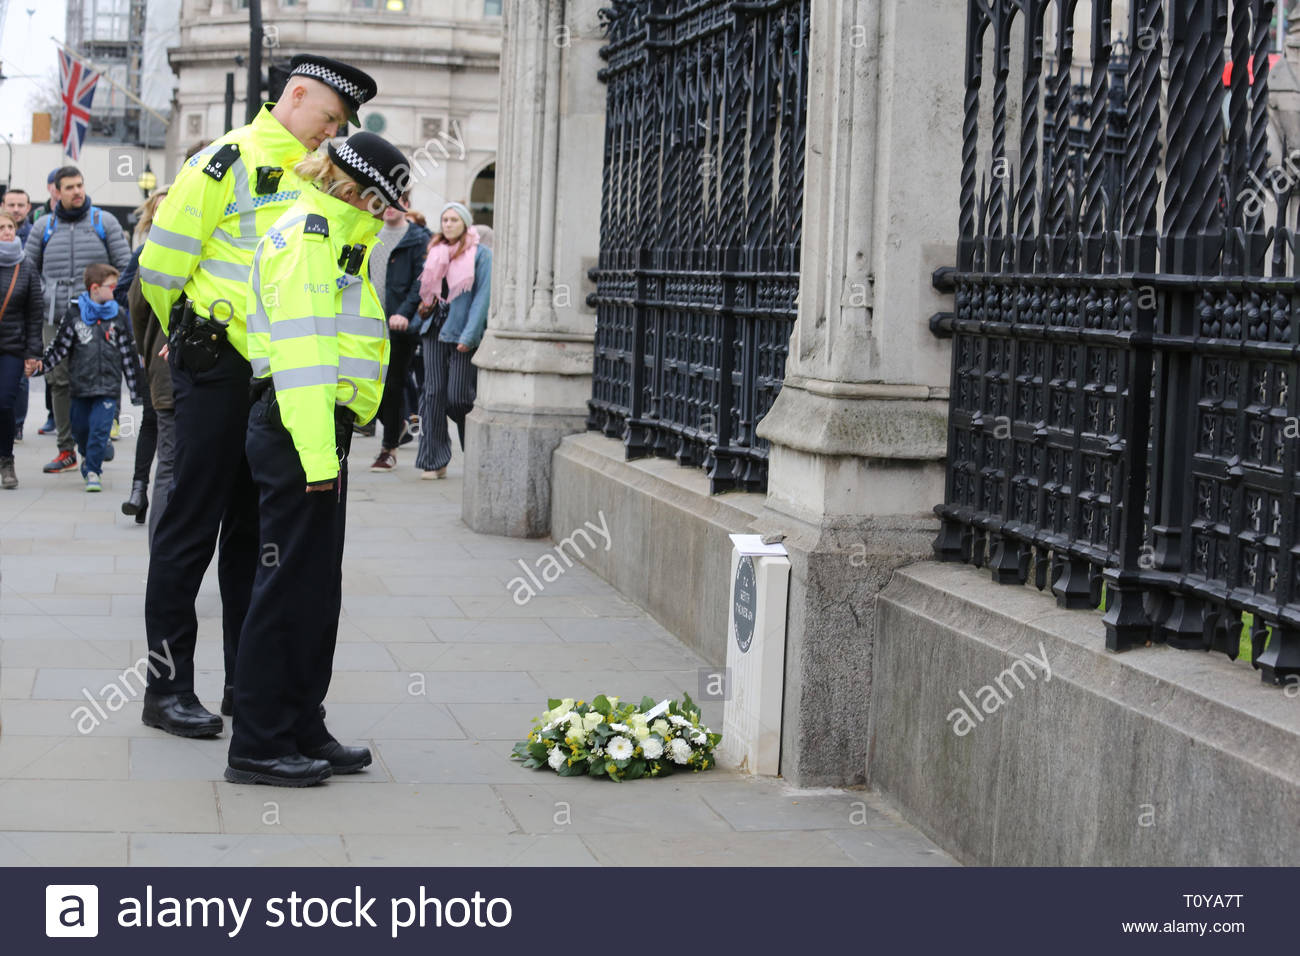 London, UK. 22nd Mar, 2019. Police constables pause at the memorial to PC Keith Palmer in Westminster. Today is the second anniversary of his death which occurred during the attack on London Bridge and parliament. A freshly-laid wreath has been placed there in his memory. Credit: Clearpix/Alamy Live News - Stock Image